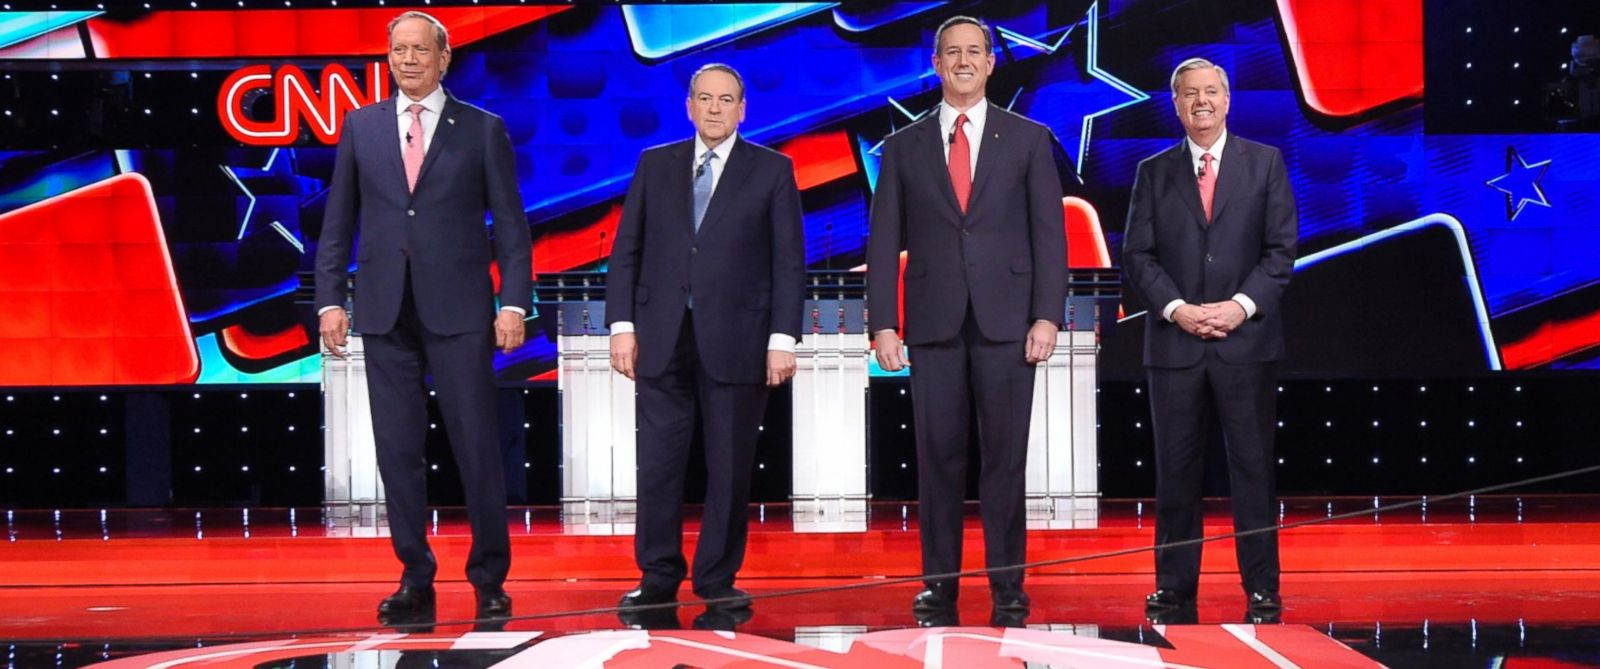 PHOTO: Republican presidential candidates, from left, George Pataki, Mike Huckabee, Rick Santorum, and Lindsey Graham take the stage during the CNN Republican presidential debate at the Venetian Hotel & Casino, Dec. 15, 2015, in Las Vegas.